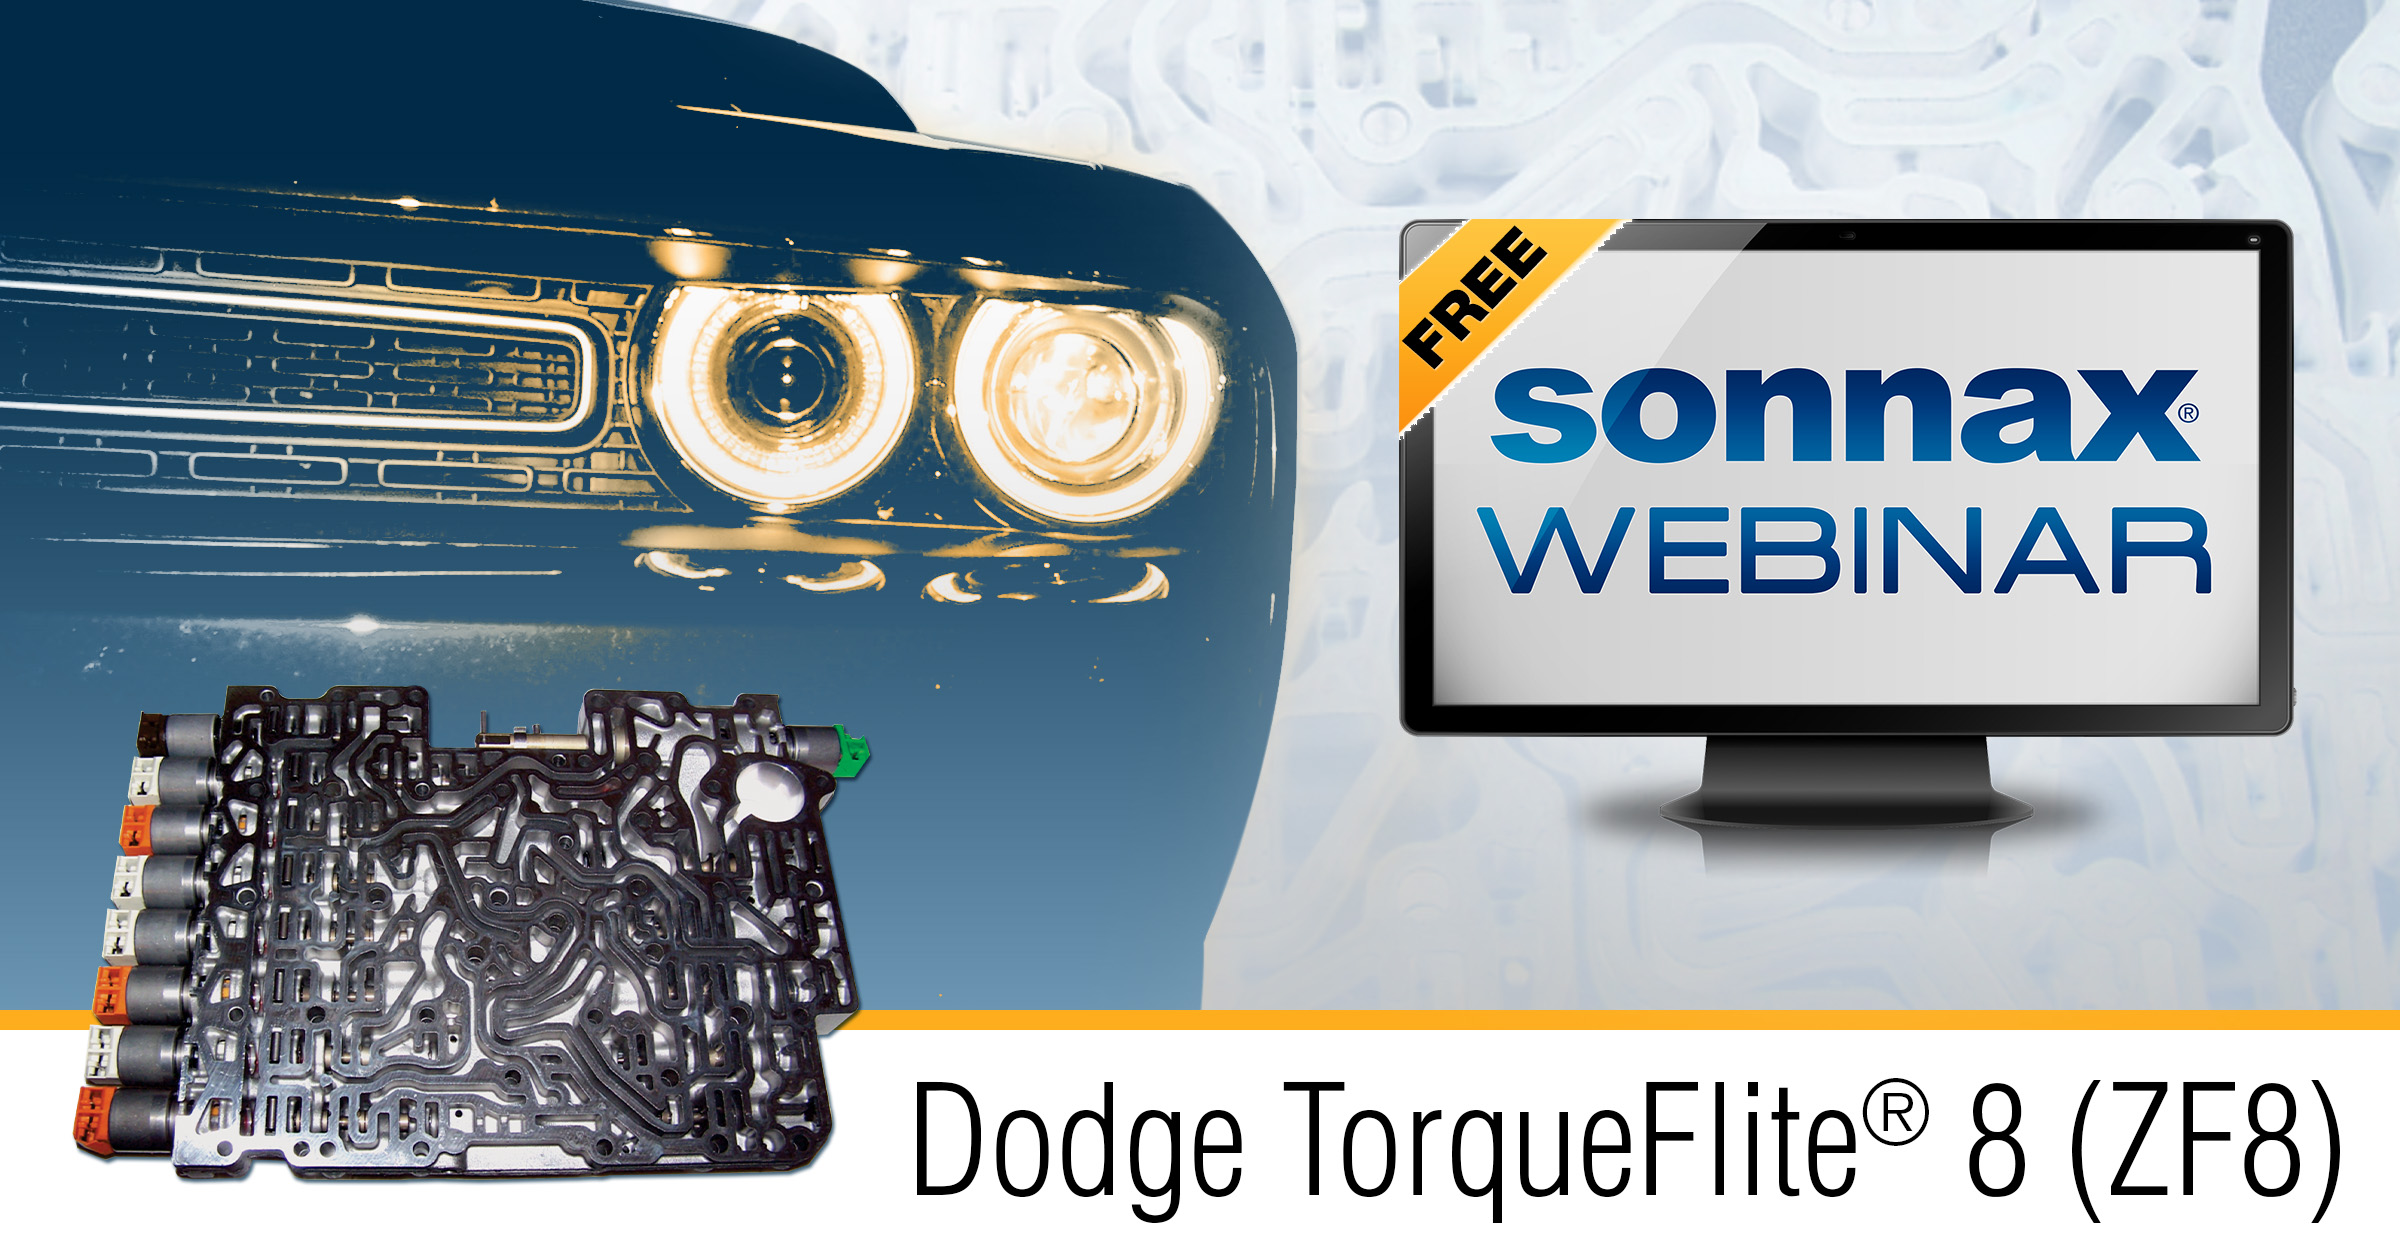 Registration Open for Dodge TorqueFlite® 8 (ZF8) Webinar